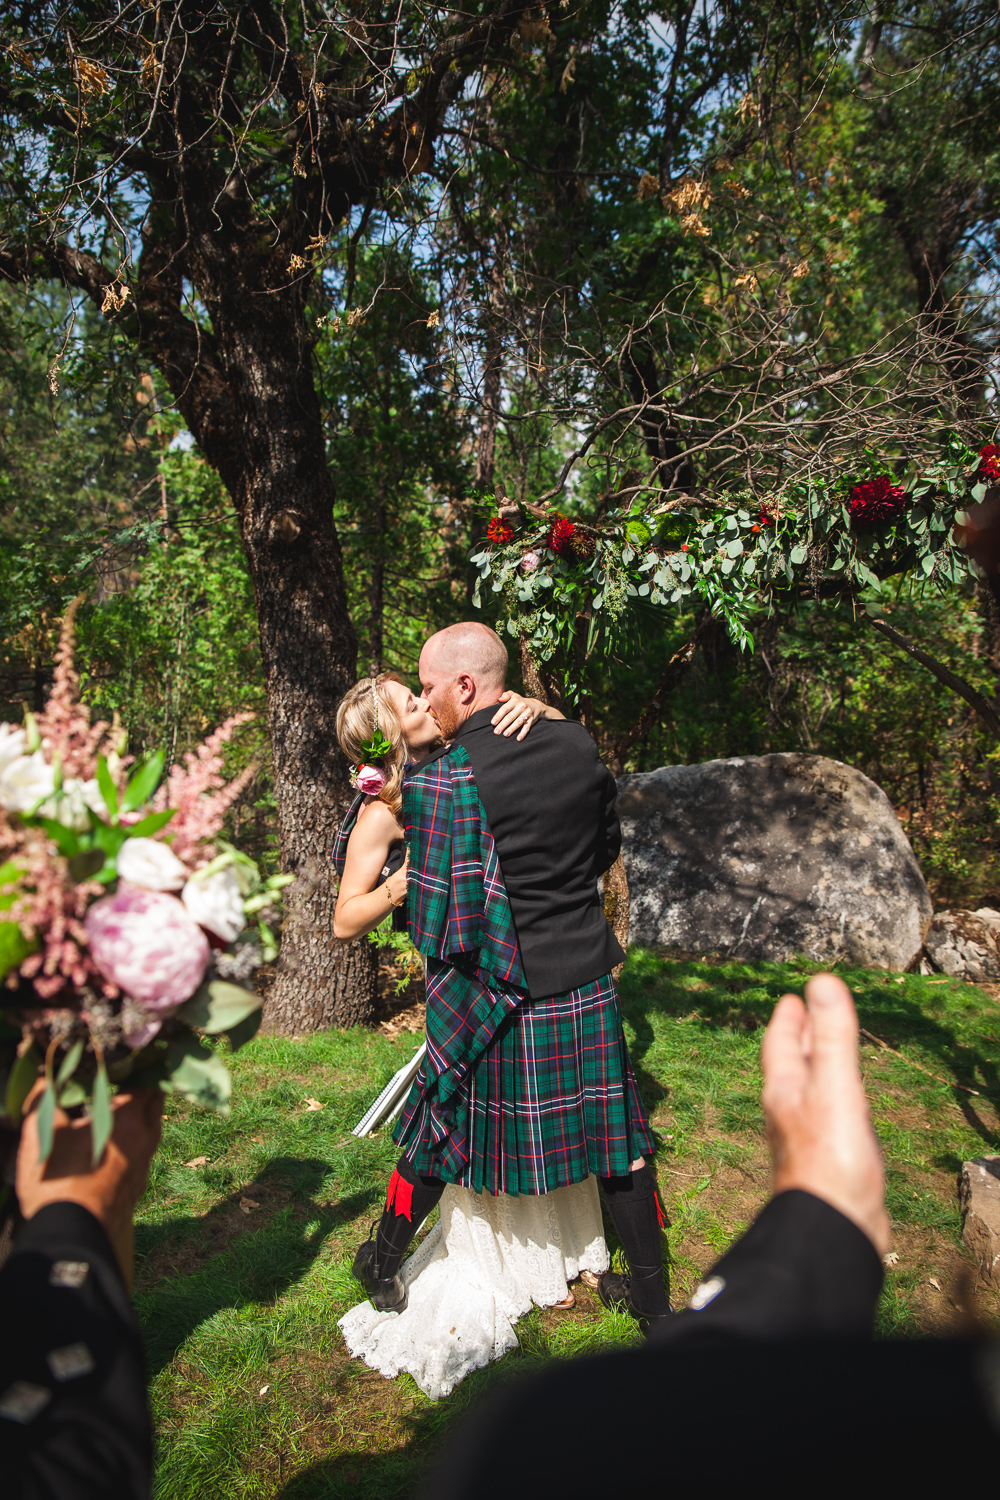 kilt wedding.jpg